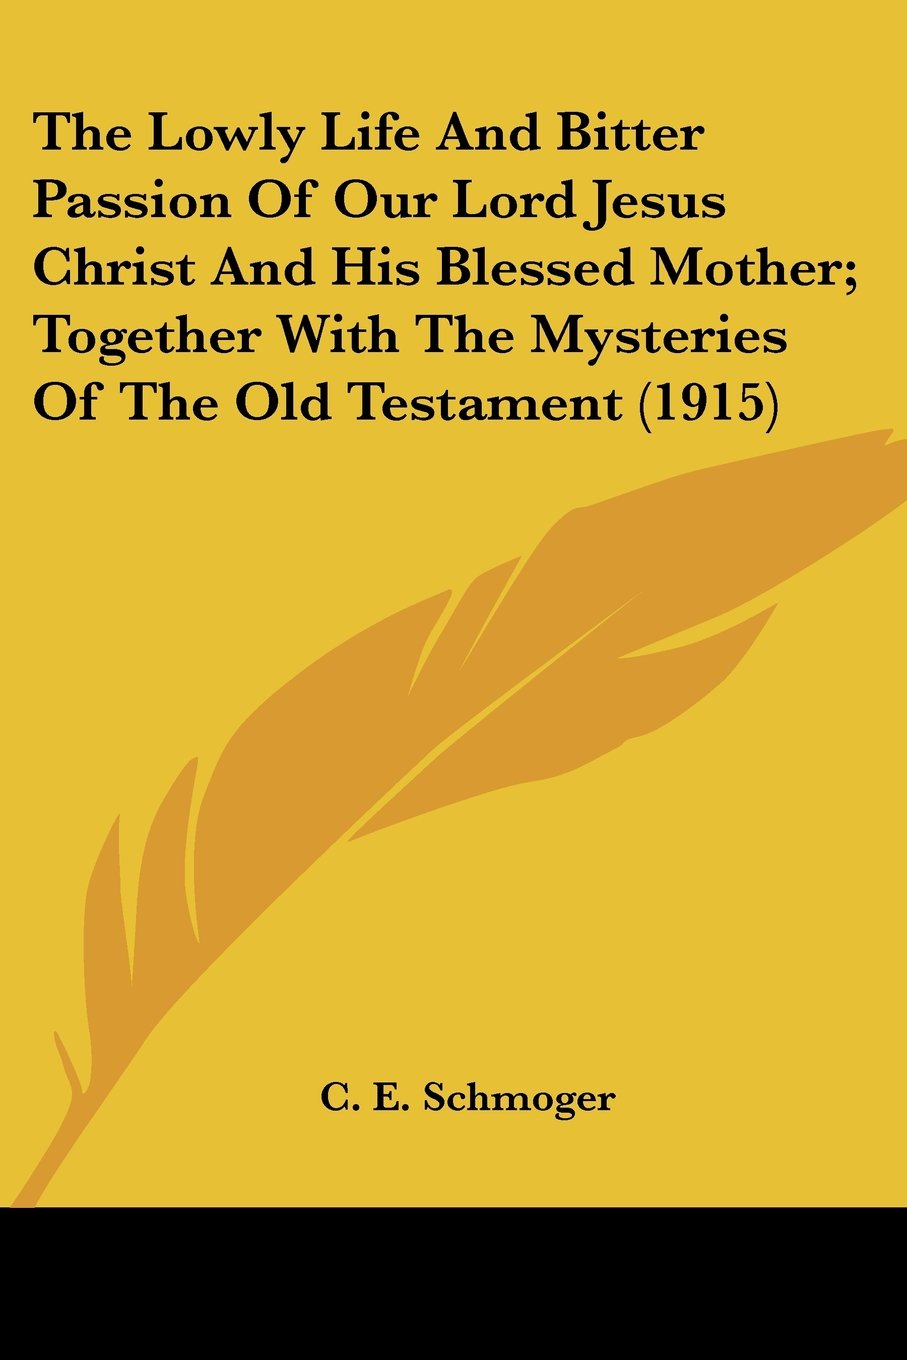 Read Online The Lowly Life And Bitter Passion Of Our Lord Jesus Christ And His Blessed Mother; Together With The Mysteries Of The Old Testament (1915) PDF